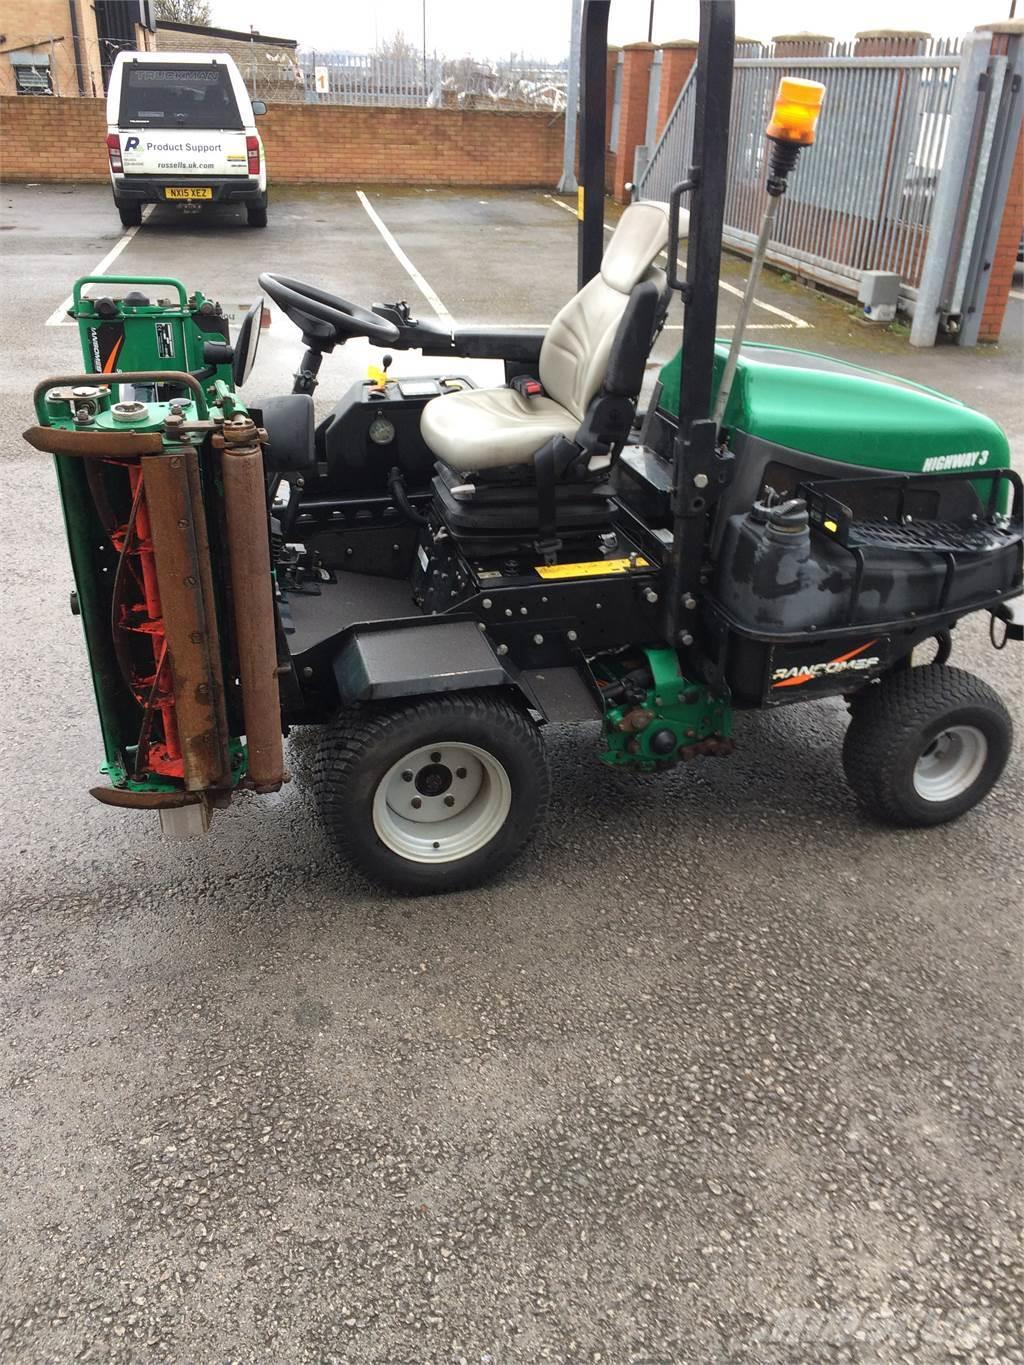 Ransomes Highway 3 Triple Ride On Mower